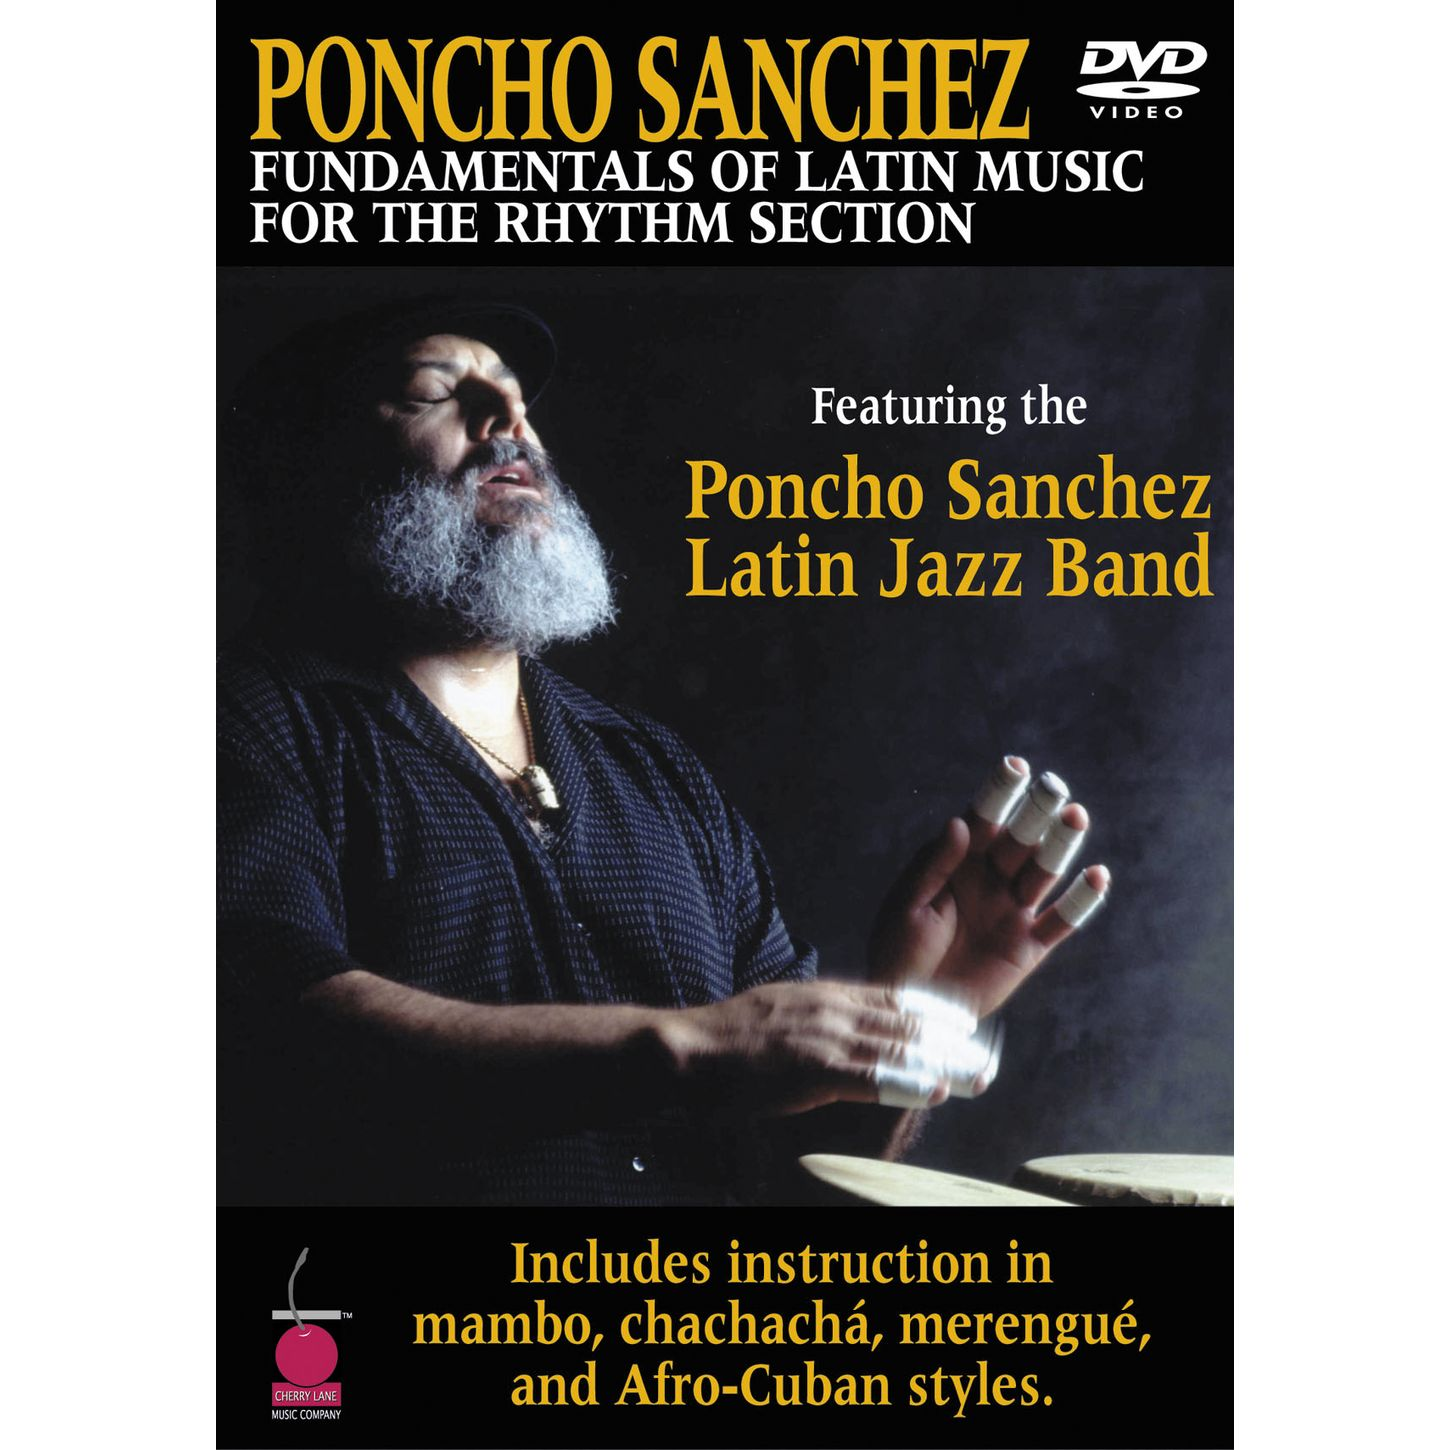 Poncho Sanchez: Fundamentals of Latin Music for the Rhythm Section